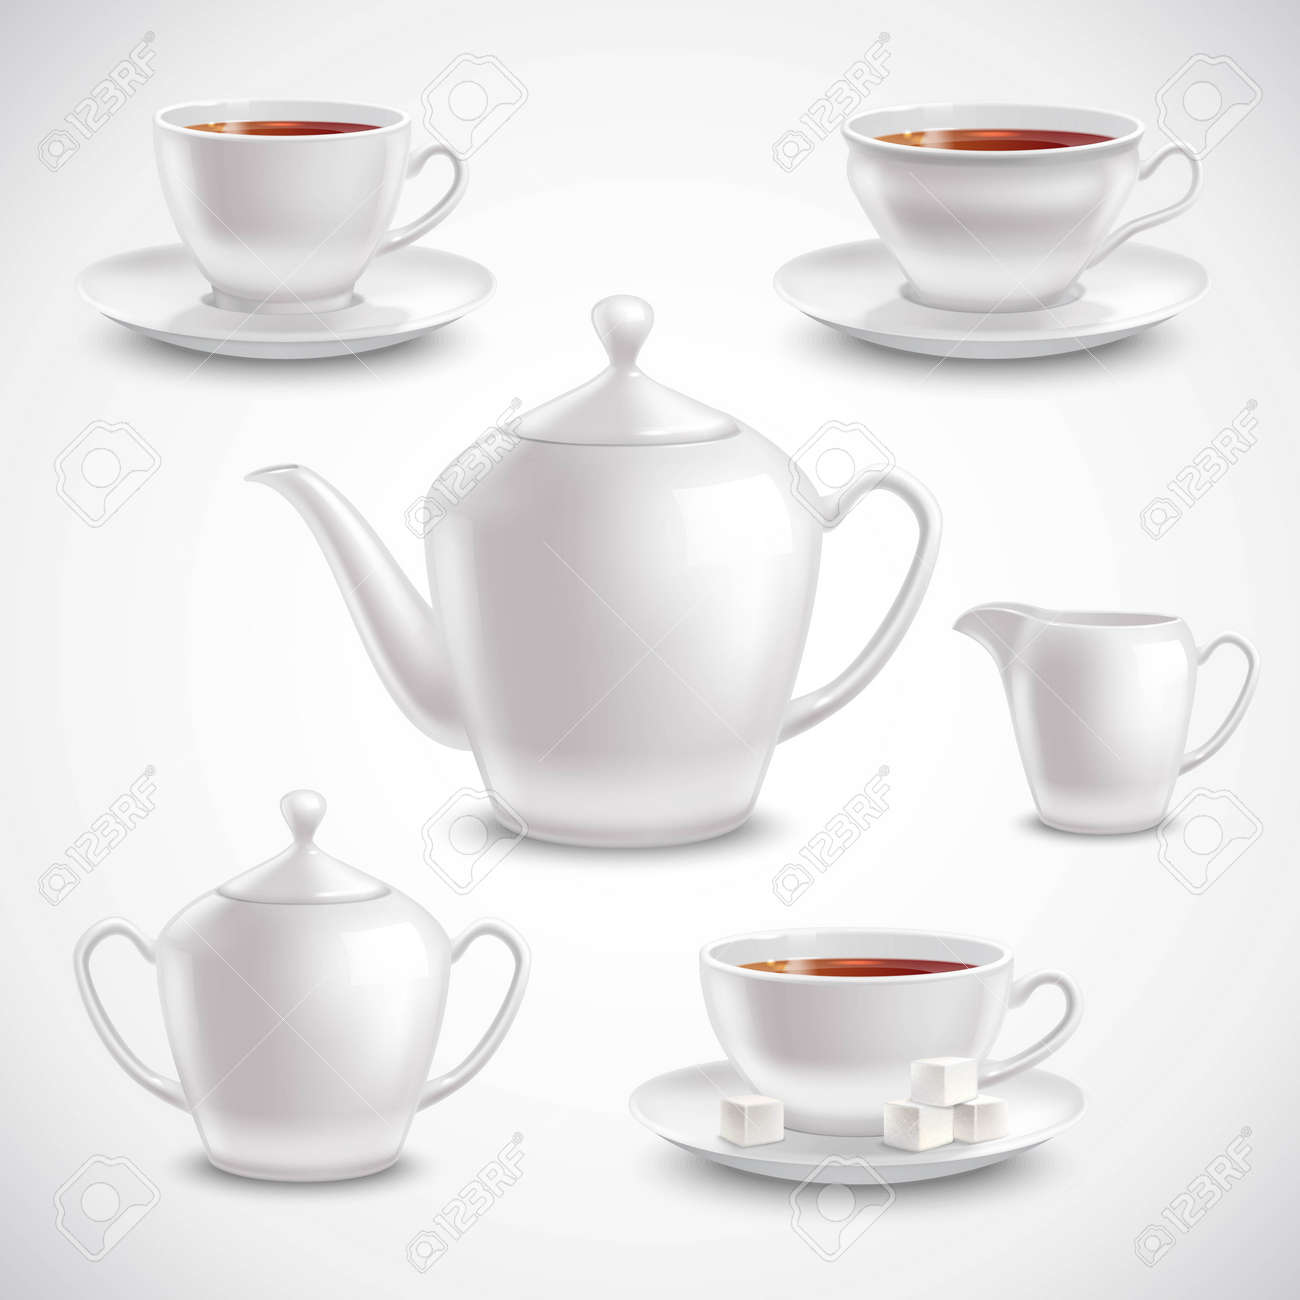 Realistic tea set with filled teacups saucers pot and sugar bowl on white background vector illustration - 165584946